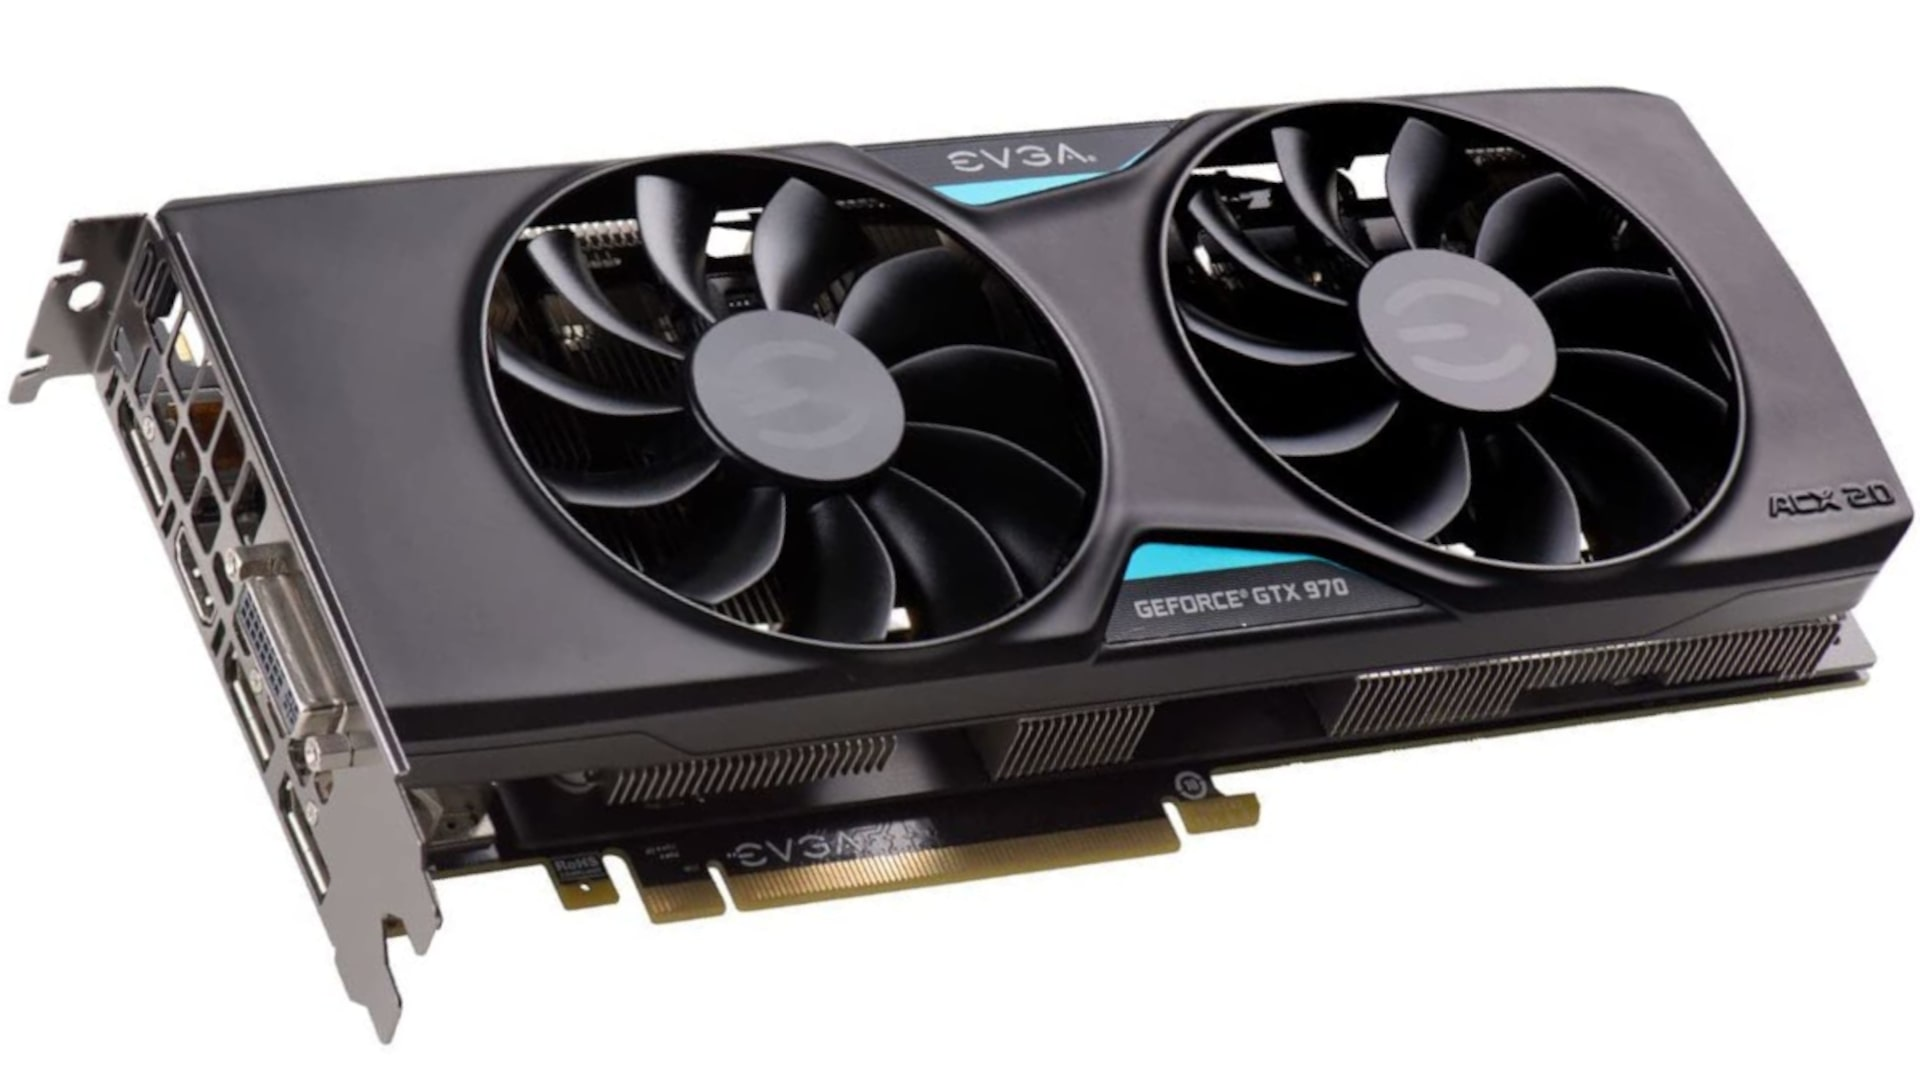 You are currently viewing EVGA GeForce GTX 970 4GB Review